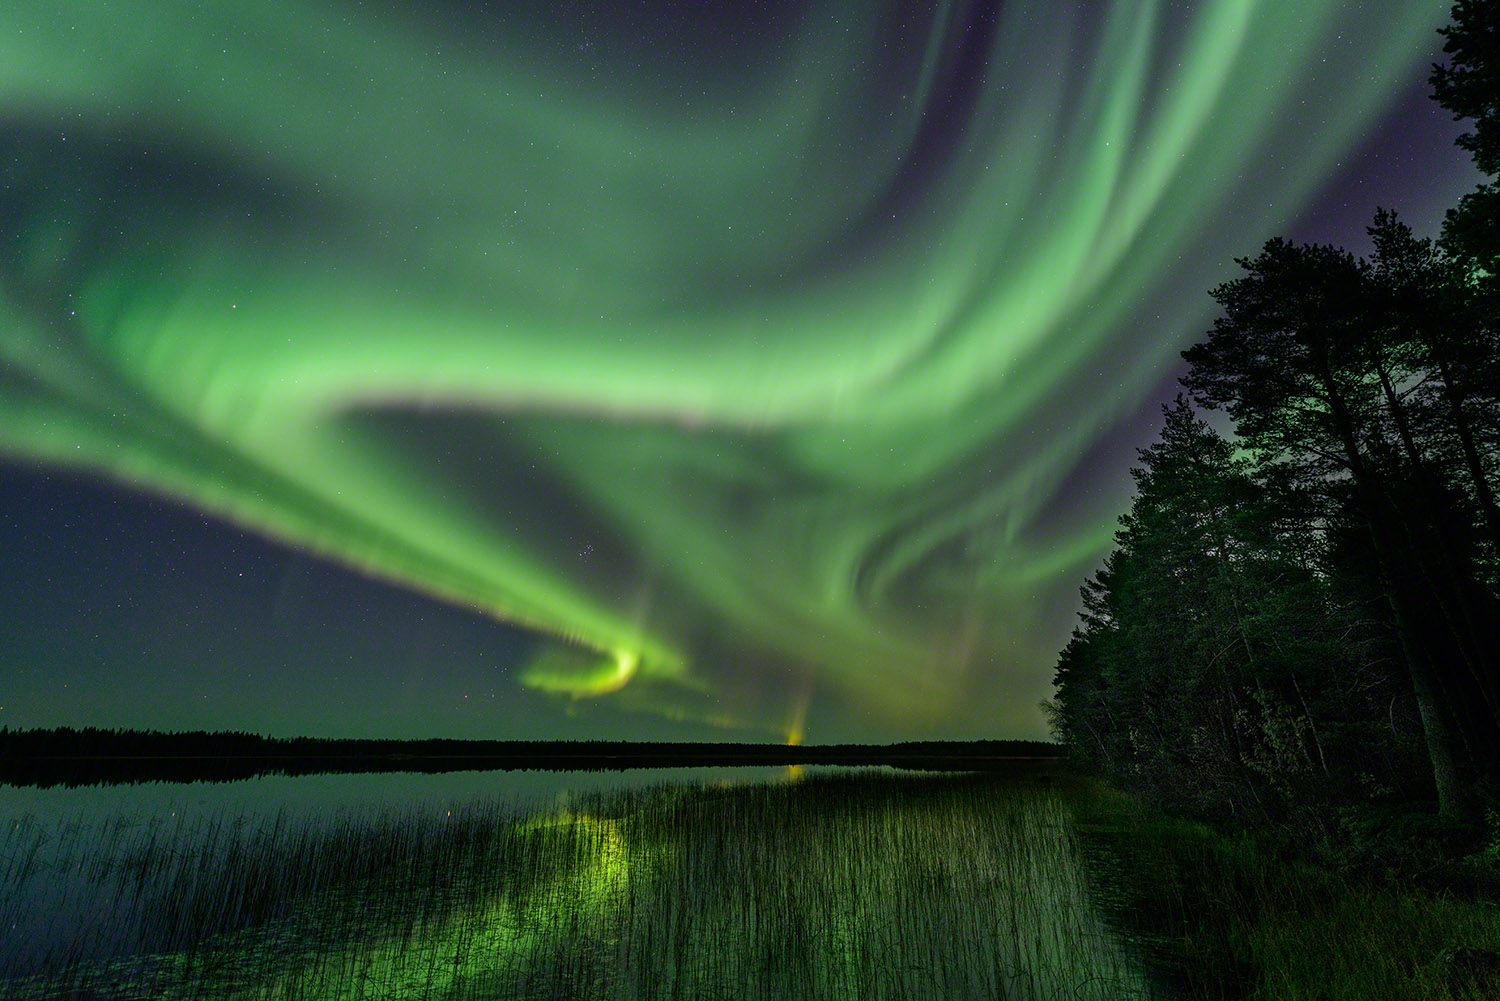 Aurora borealis photography with reflections in a lake near Oulu, Finland